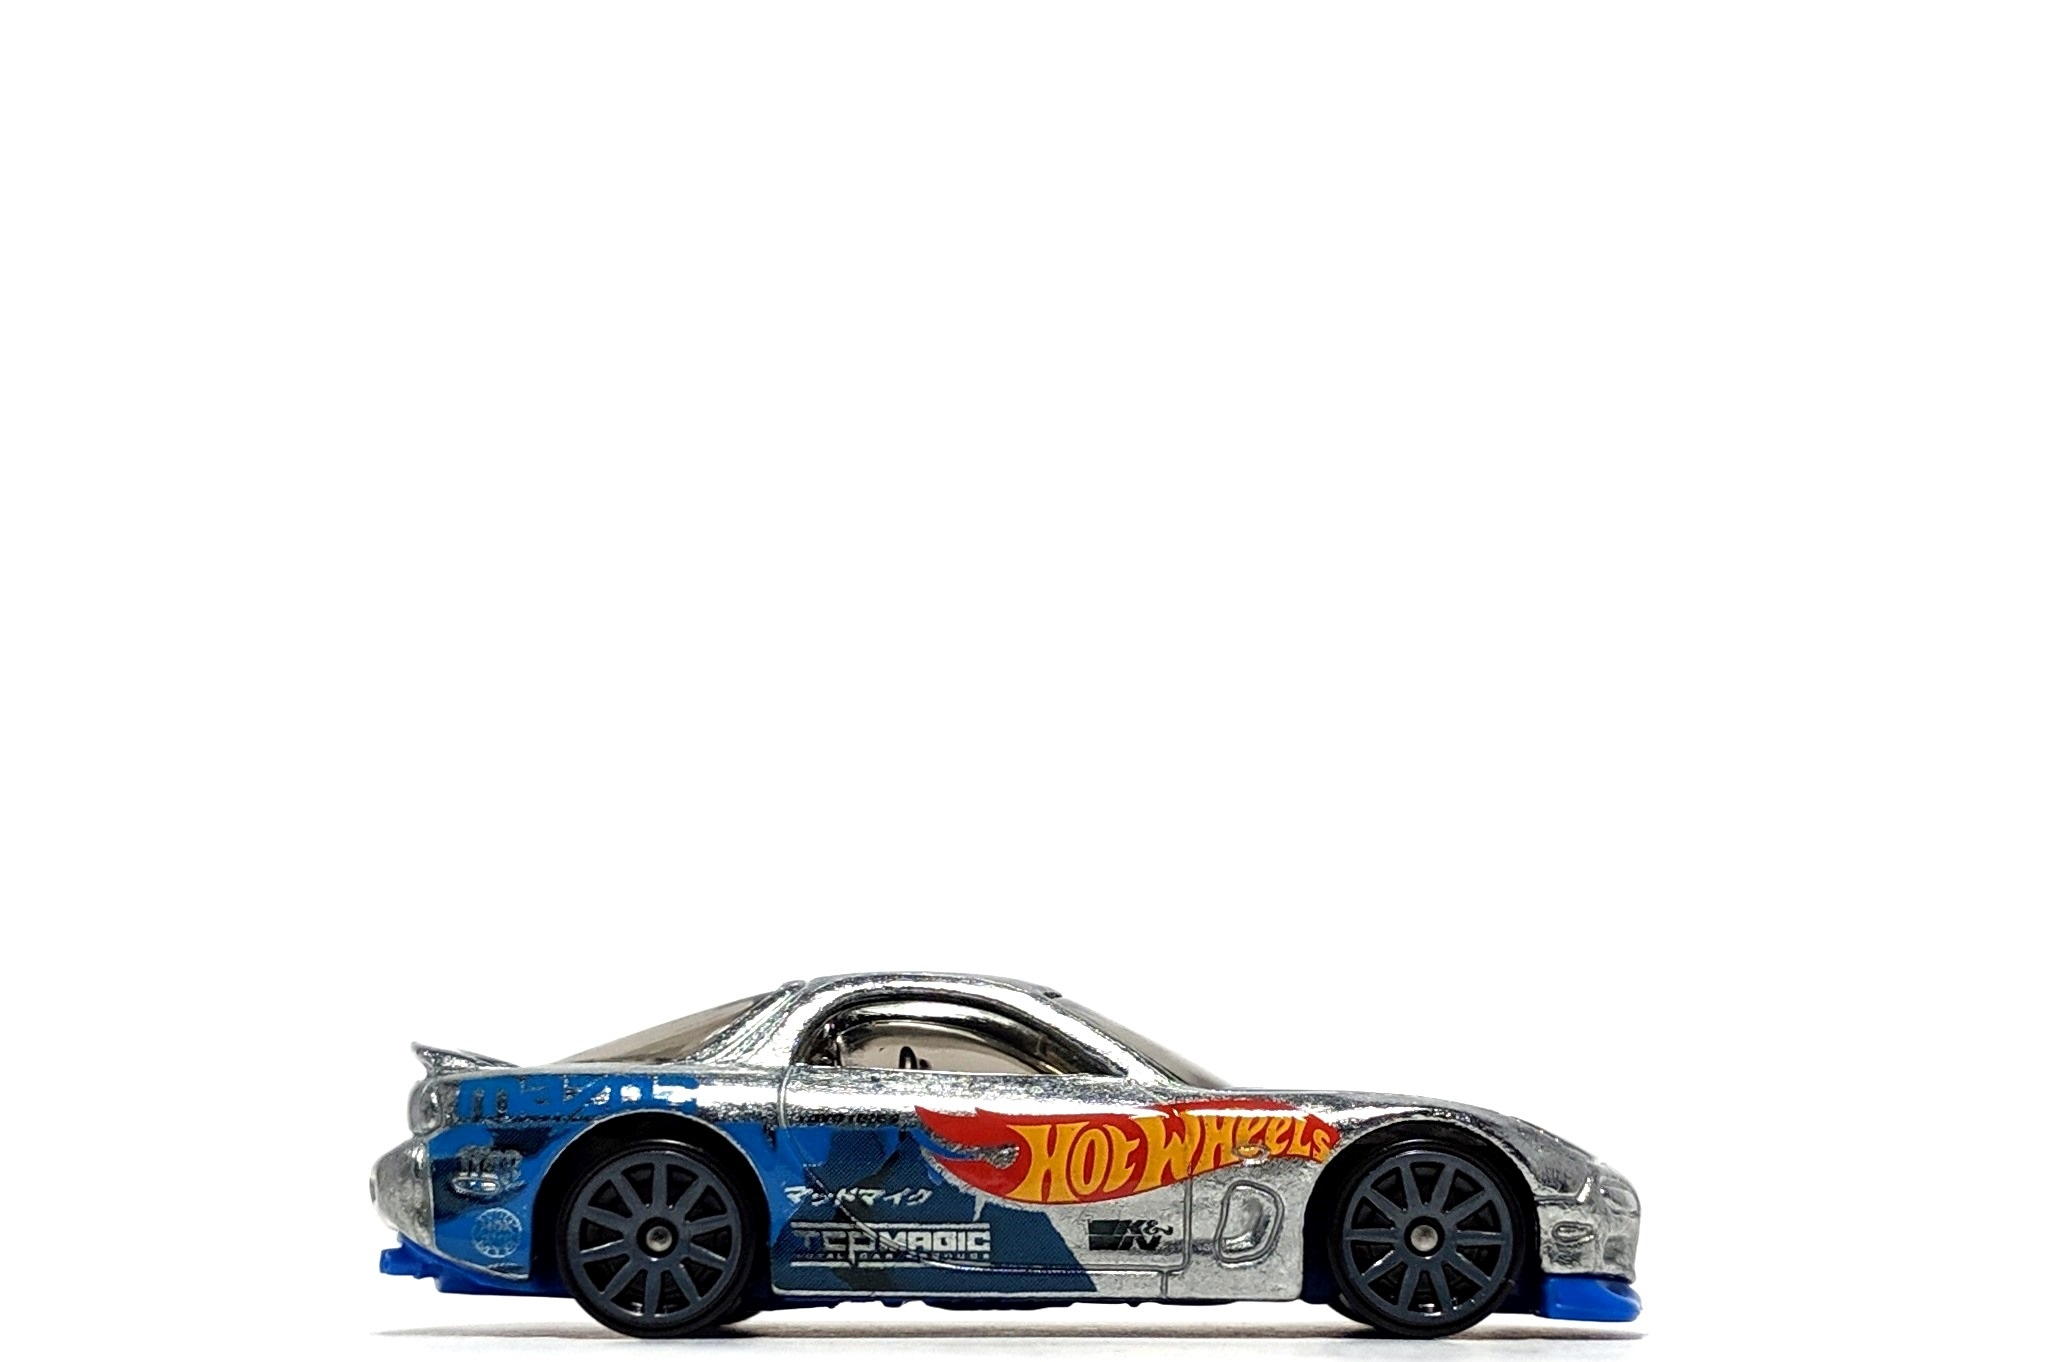 '95 Mazda RX-7 (Zamac), by Hot Wheels (Walmart-exclusive)